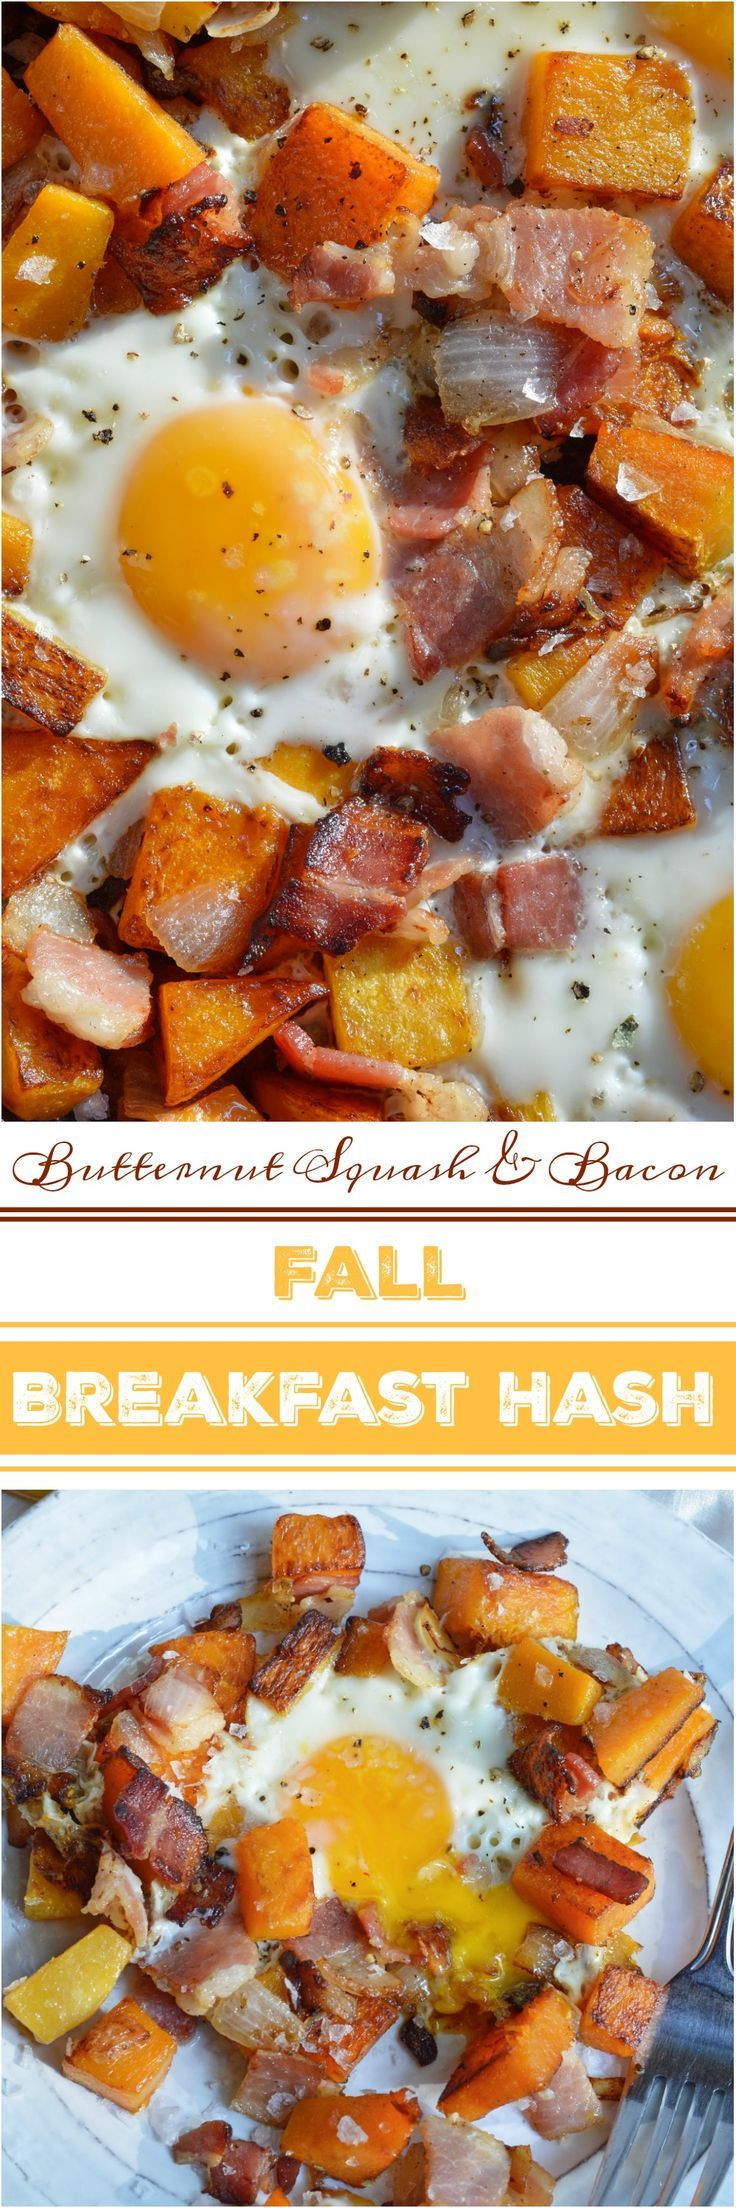 Fall Breakfast Recipe  The air is ting chilly and it is time for cozy fort